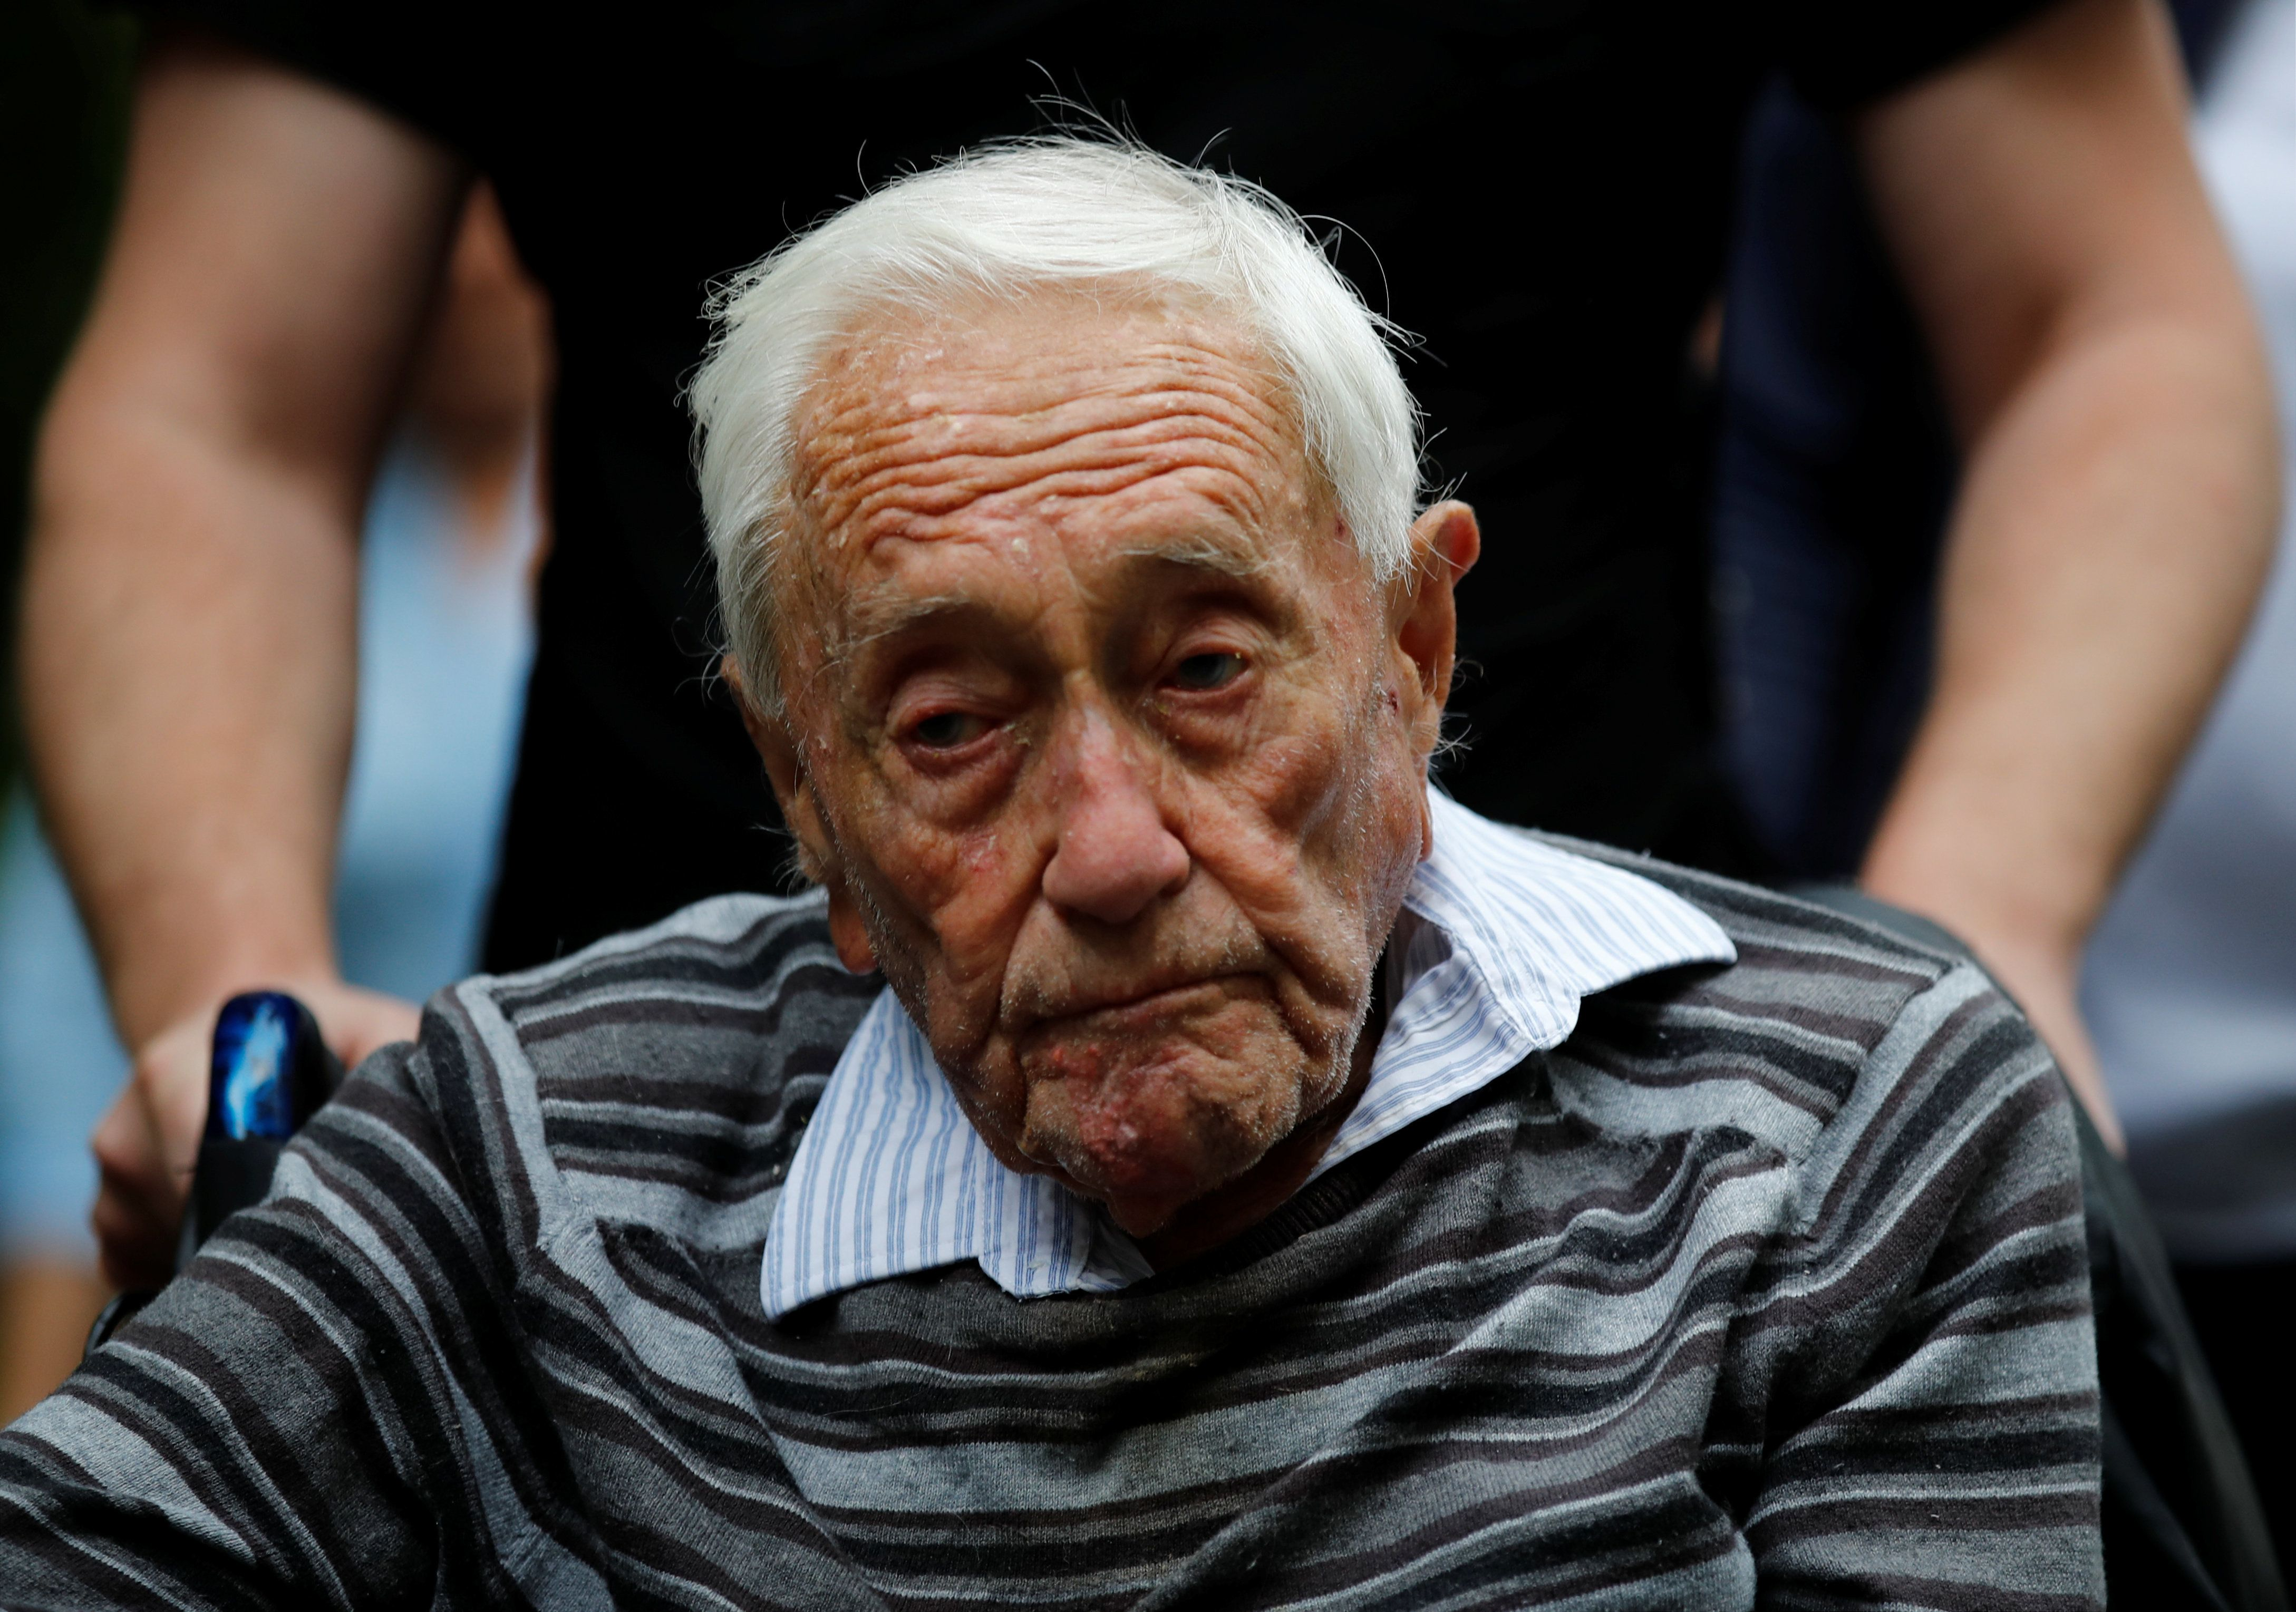 David Goodall, 104, arrives to hold a news conference a day before he intends to take his own life in assisted suicide, in Ba